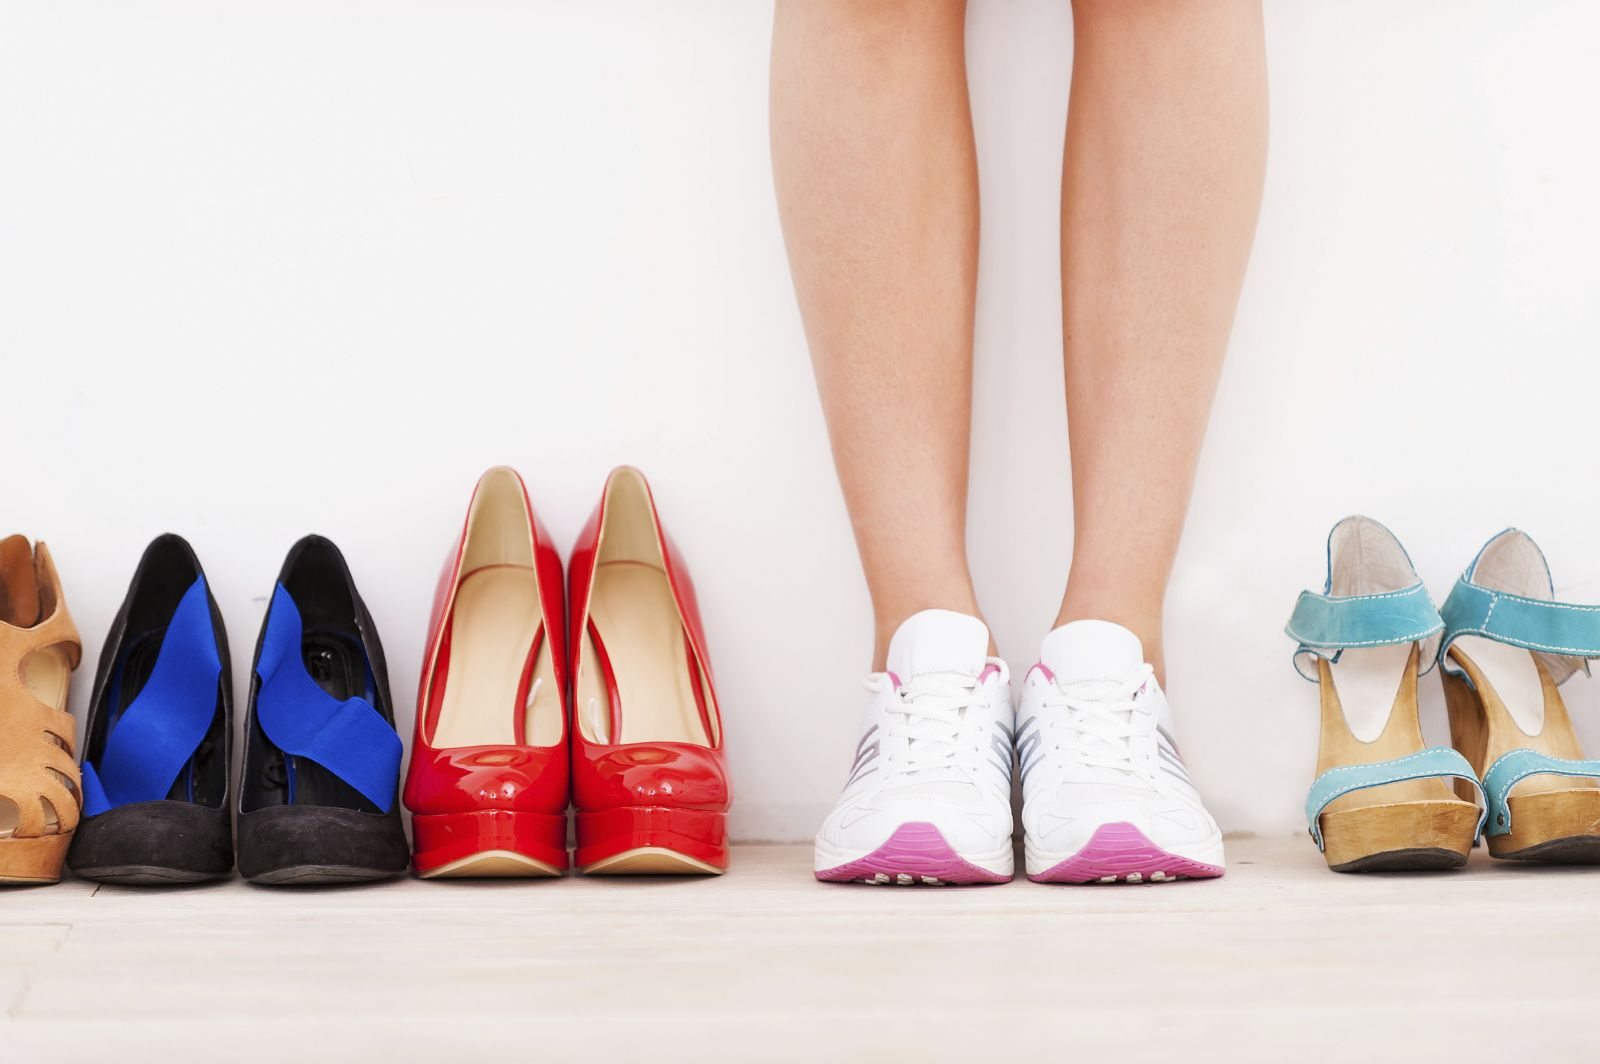 d9c9f5de116b Buying the right shoes is an investment in foot health. But how do you find  ones that fit properly and provide adequate support